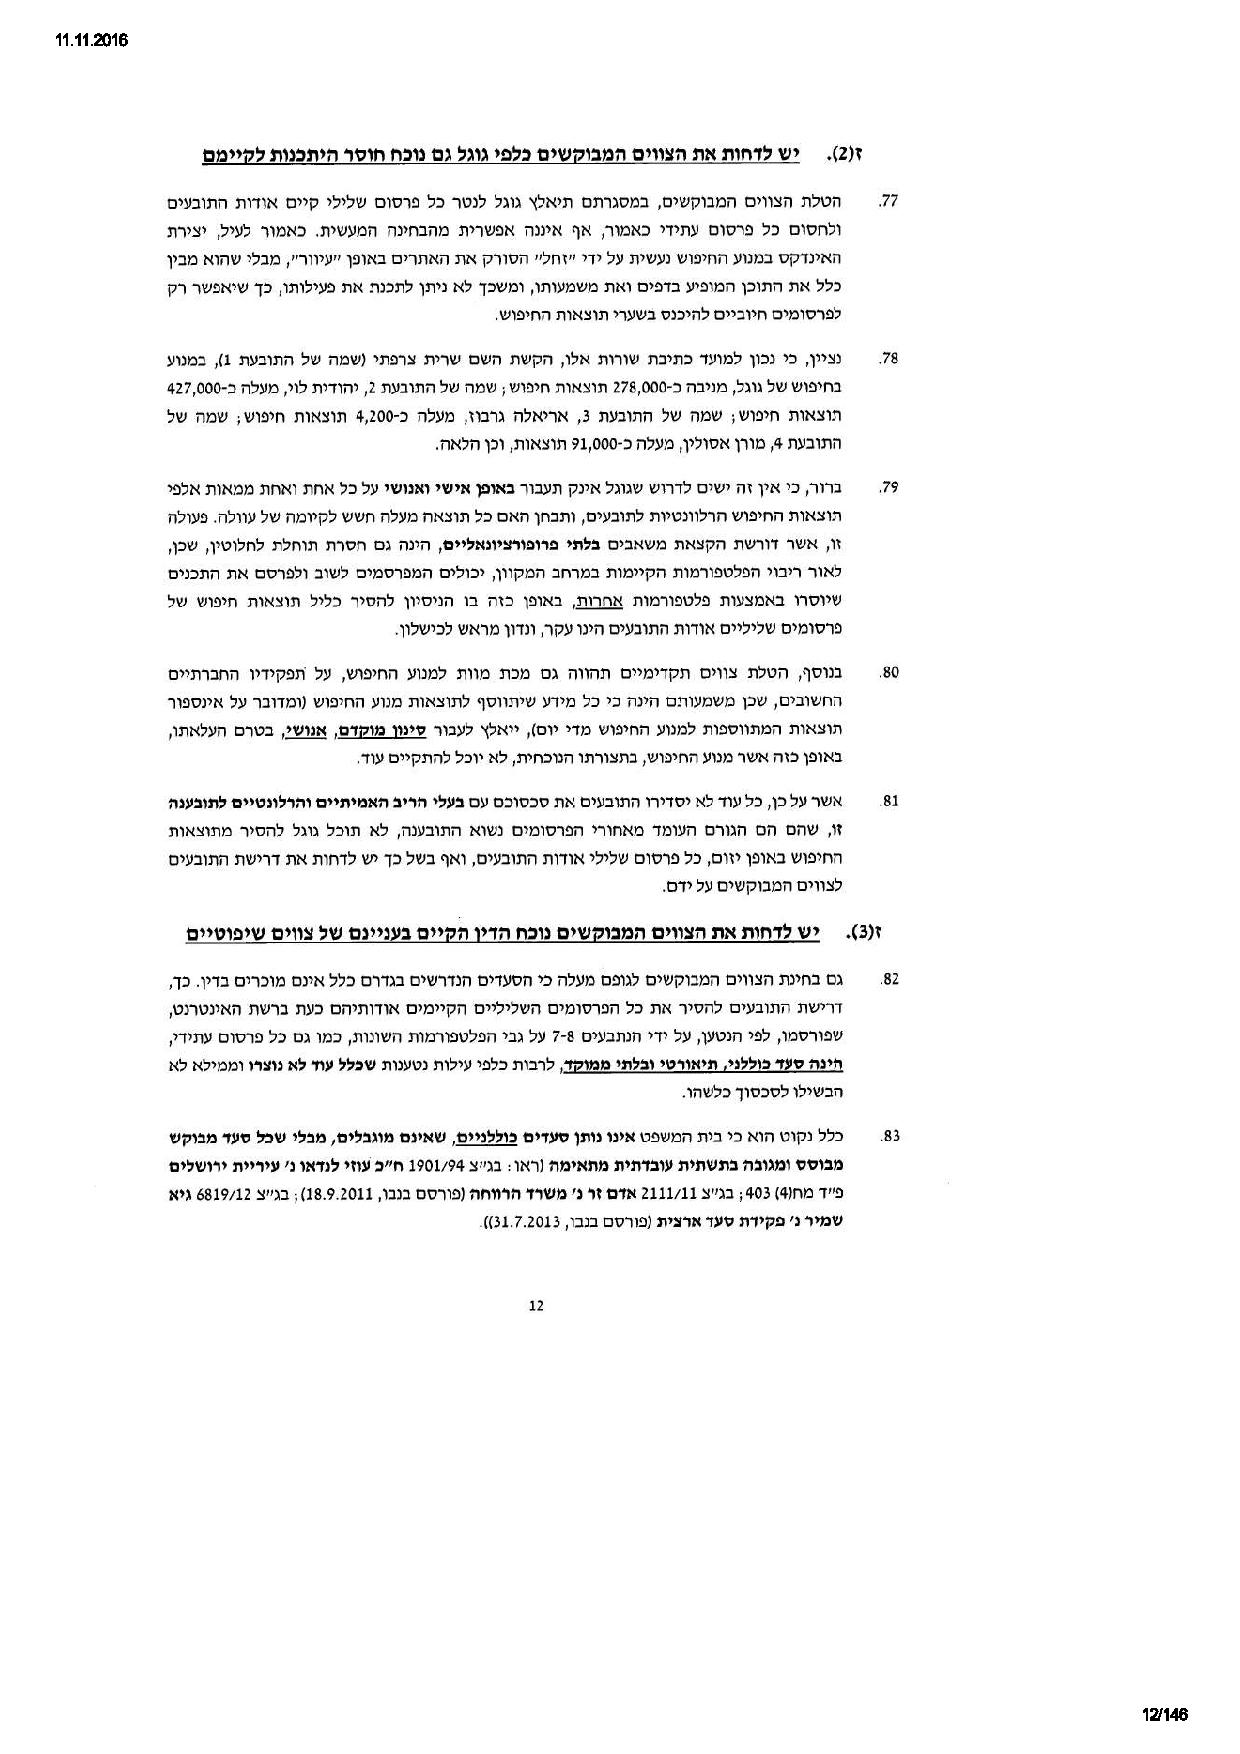 document-page-012